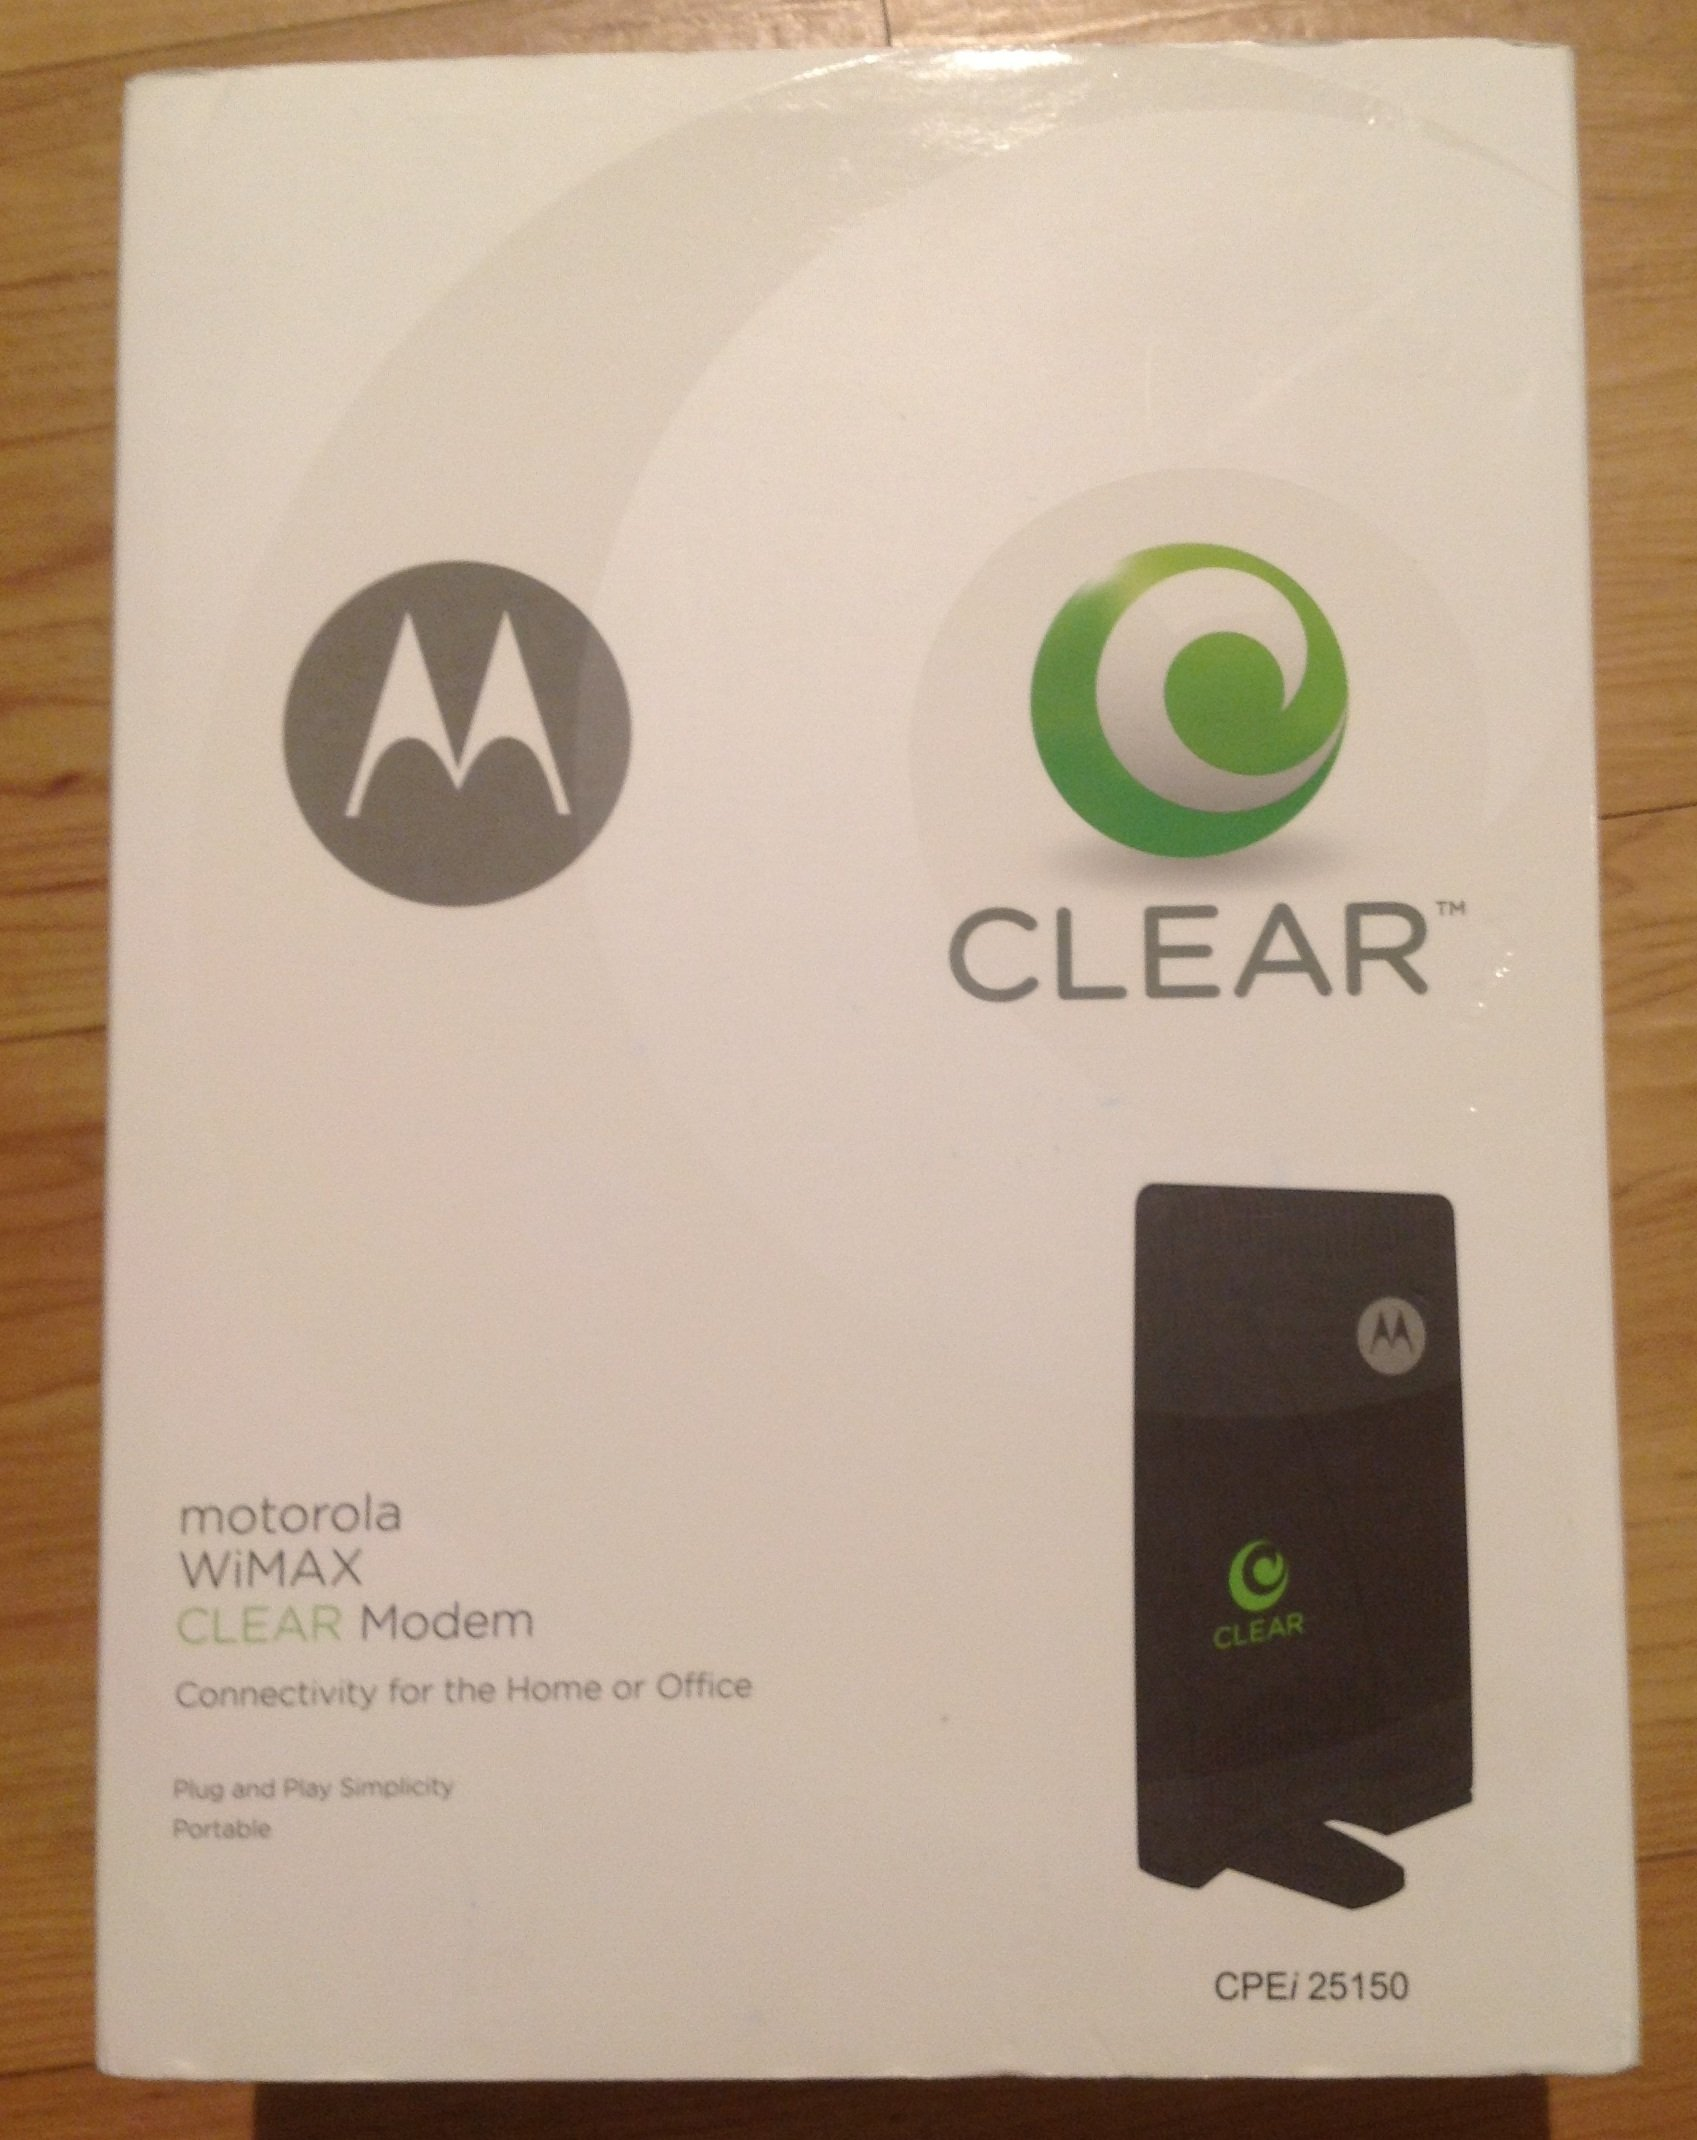 Motorola CPEi 25150 Clear 4G Wireless Modem Dual Integrated Antenna